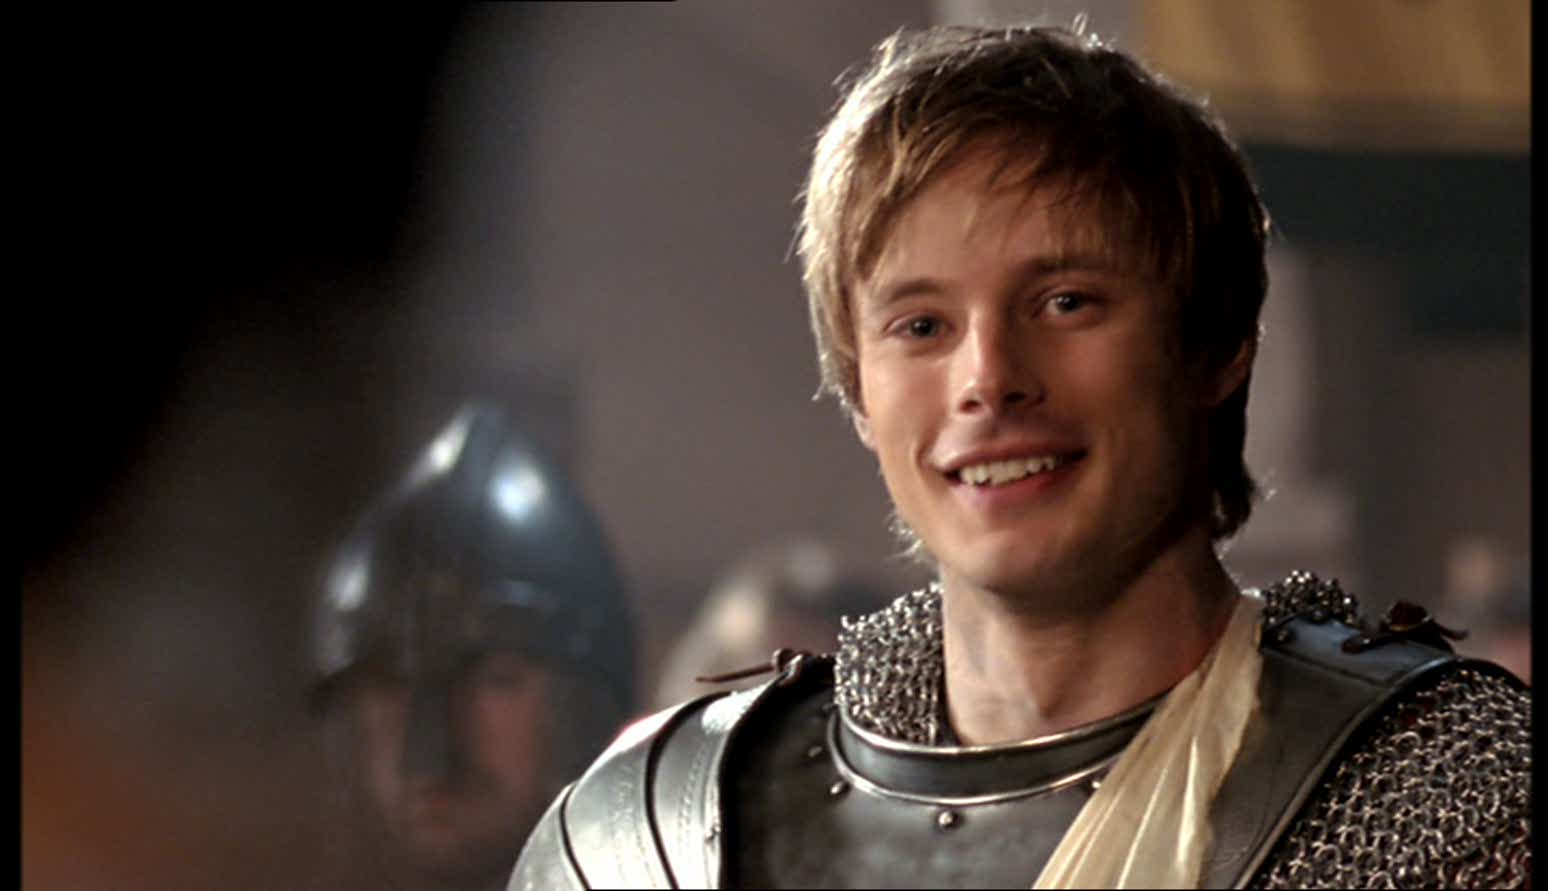 bradley james smile - photo #3